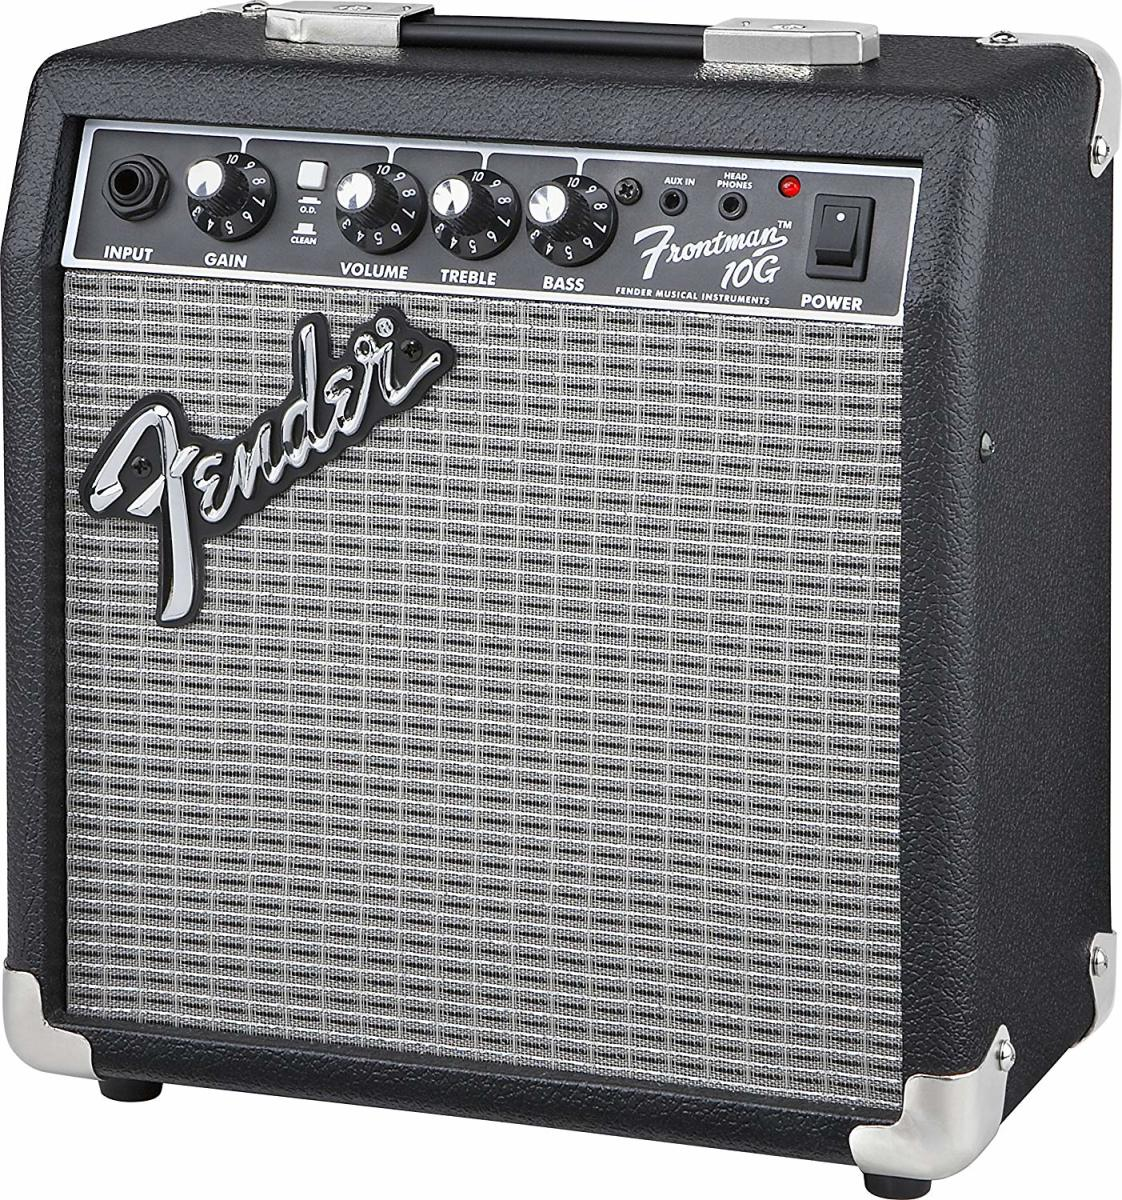 The Fender Frontman 10 is one of the best guitar amps for beginners with a budget under $100.